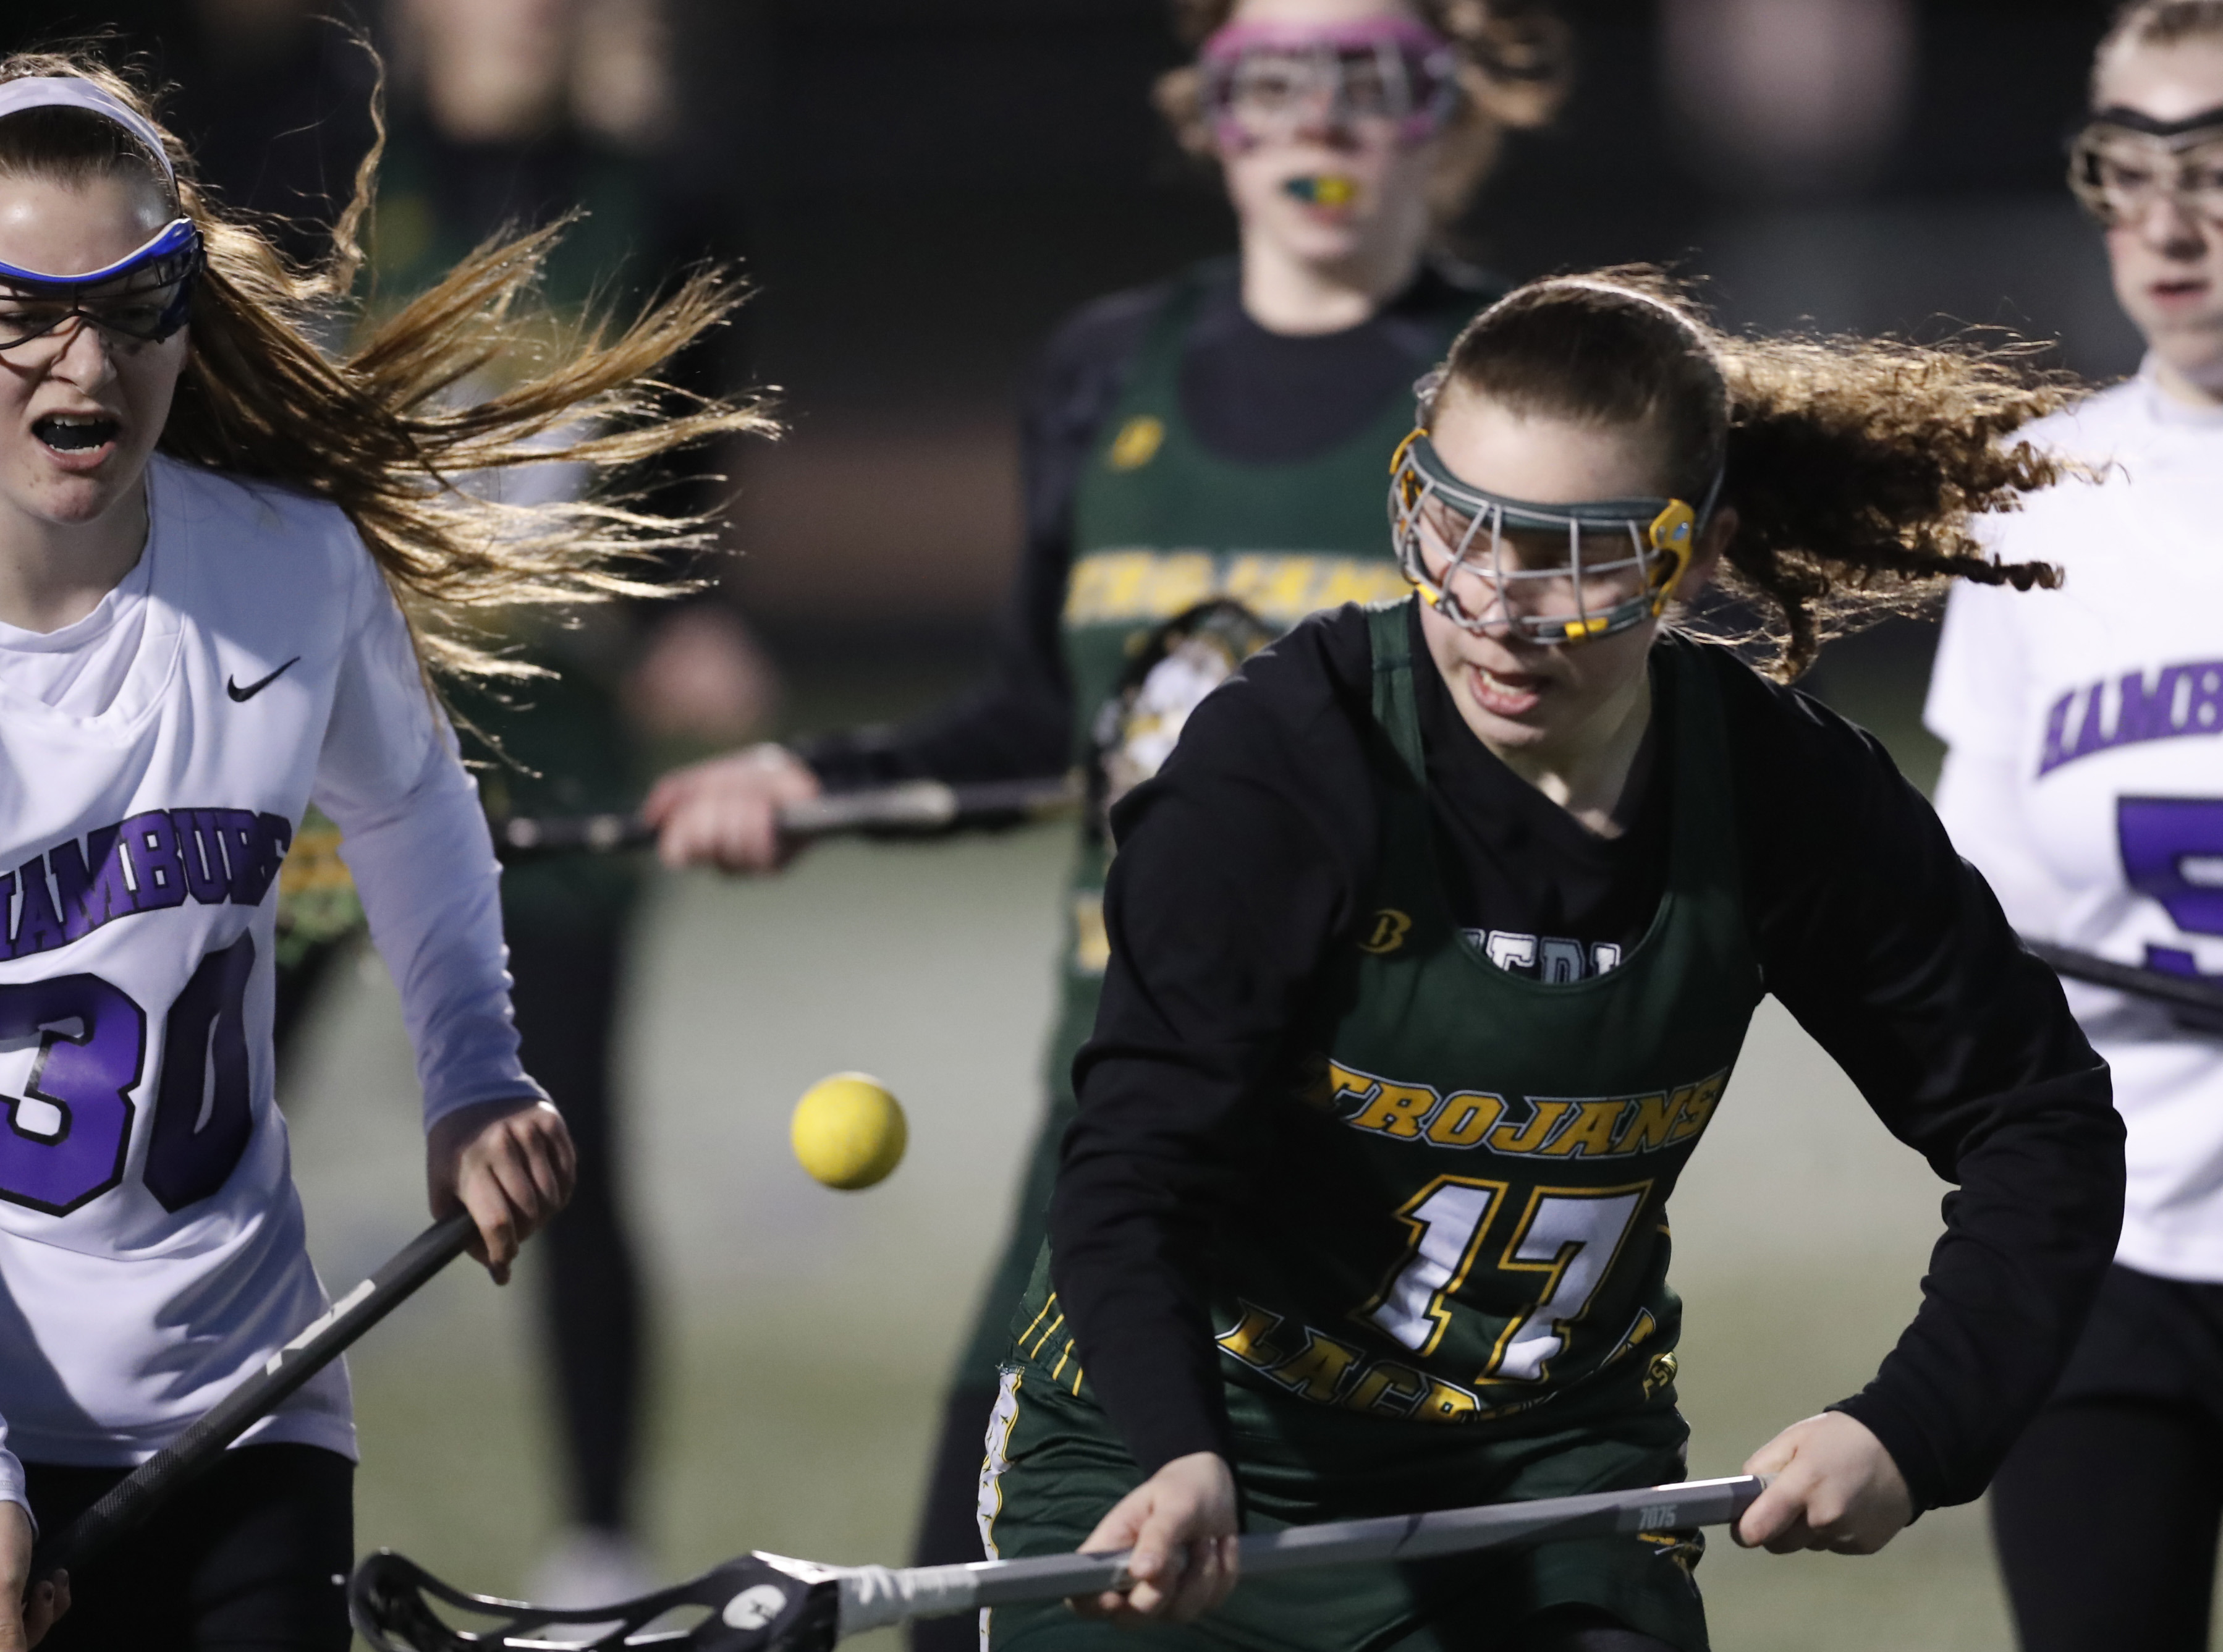 Hamburg's Meagan Maxwell and West Seneca East's Kaira Patterson look to lead their respective teams to Section VI finals in different classifications a year playing each other for the Class B crown. (Harry Scull Jr./Buffalo News)